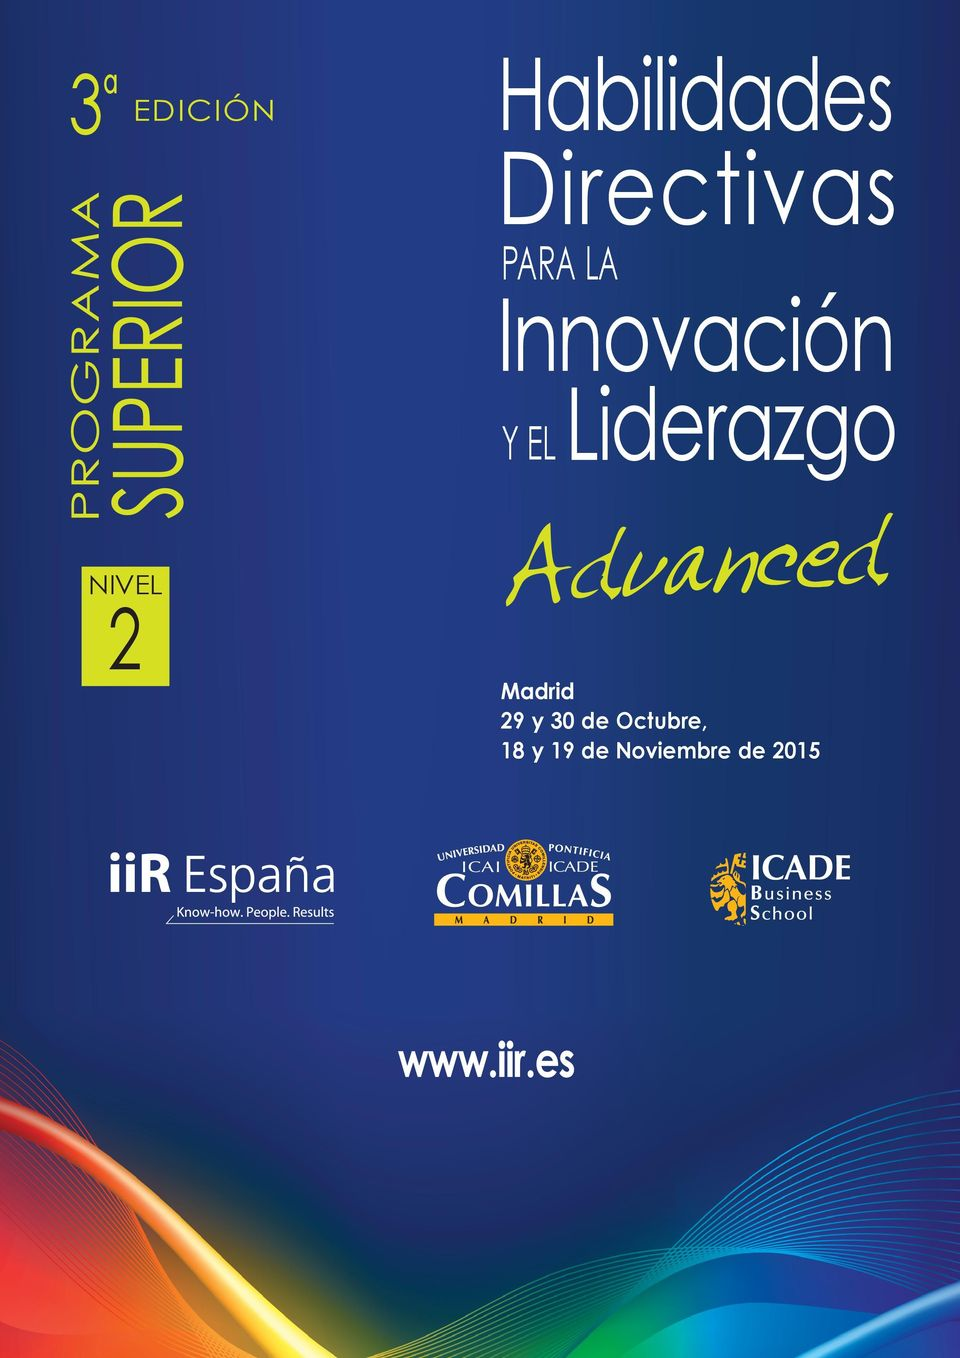 Y EL Liderazgo Advanced Madrid 29 y 30 de